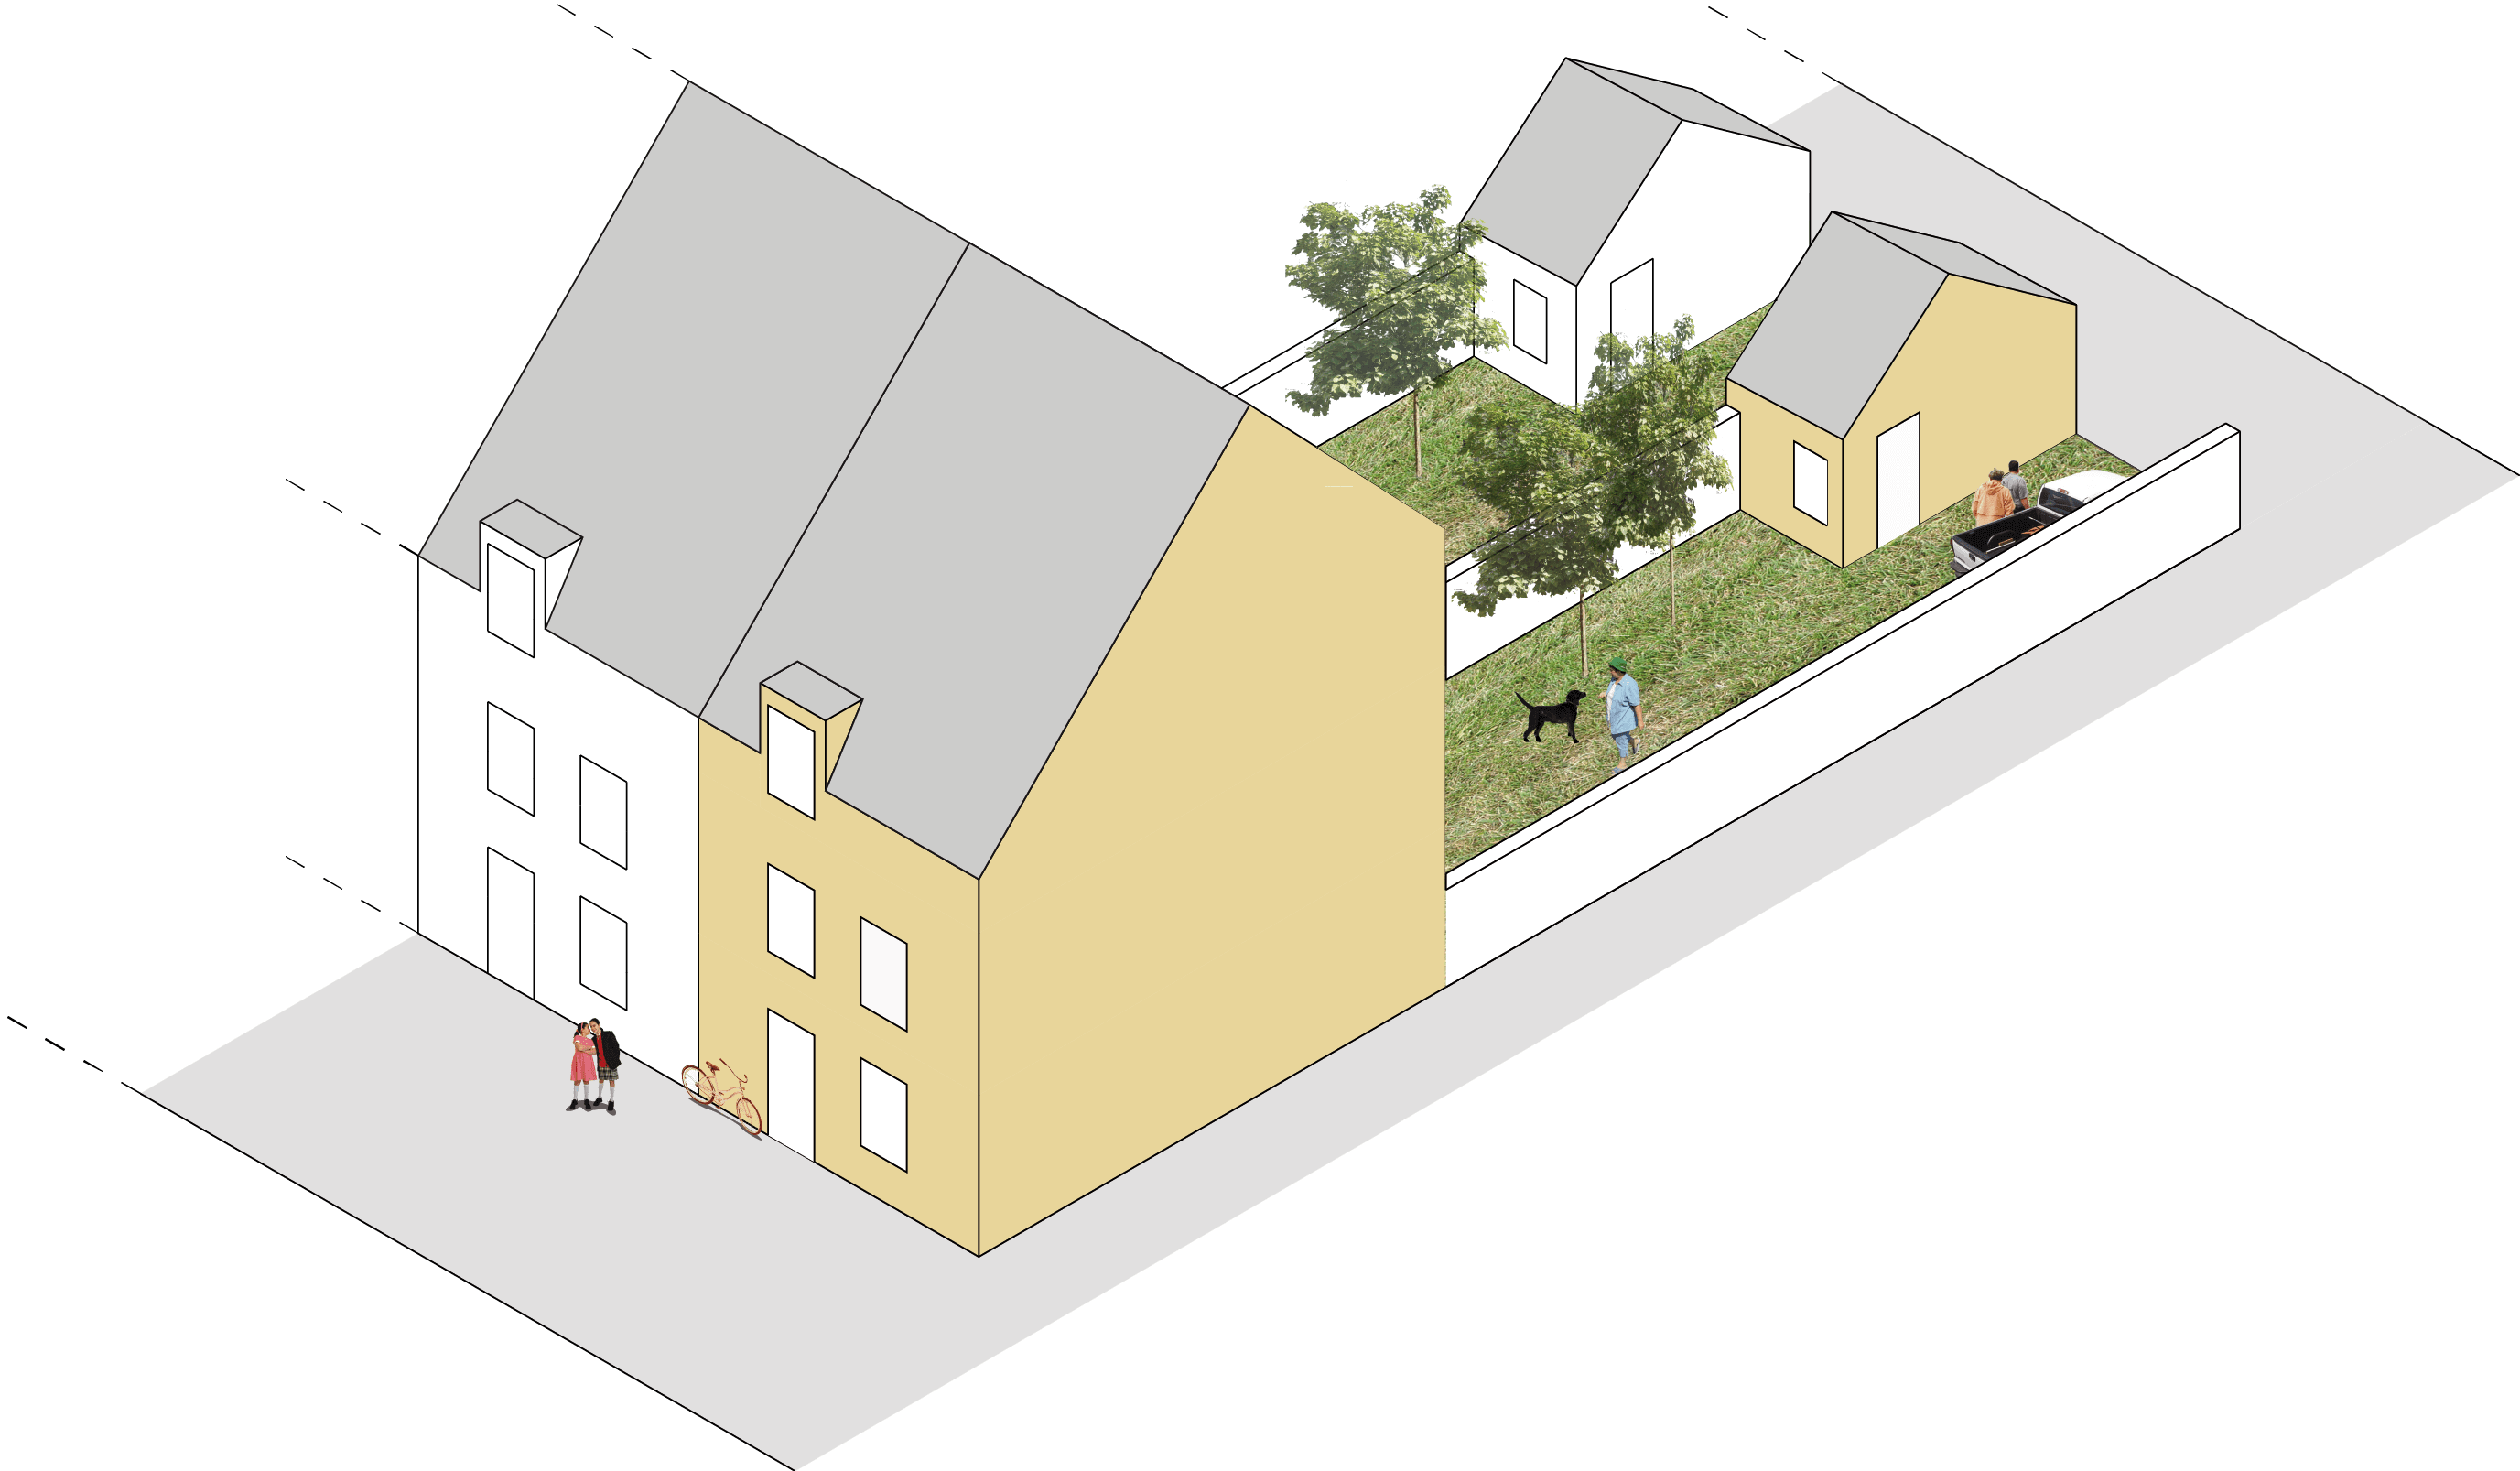 Terraced house axonometric at An Camas Mor, Rothiemurchus, Aviemore, Cairngorms